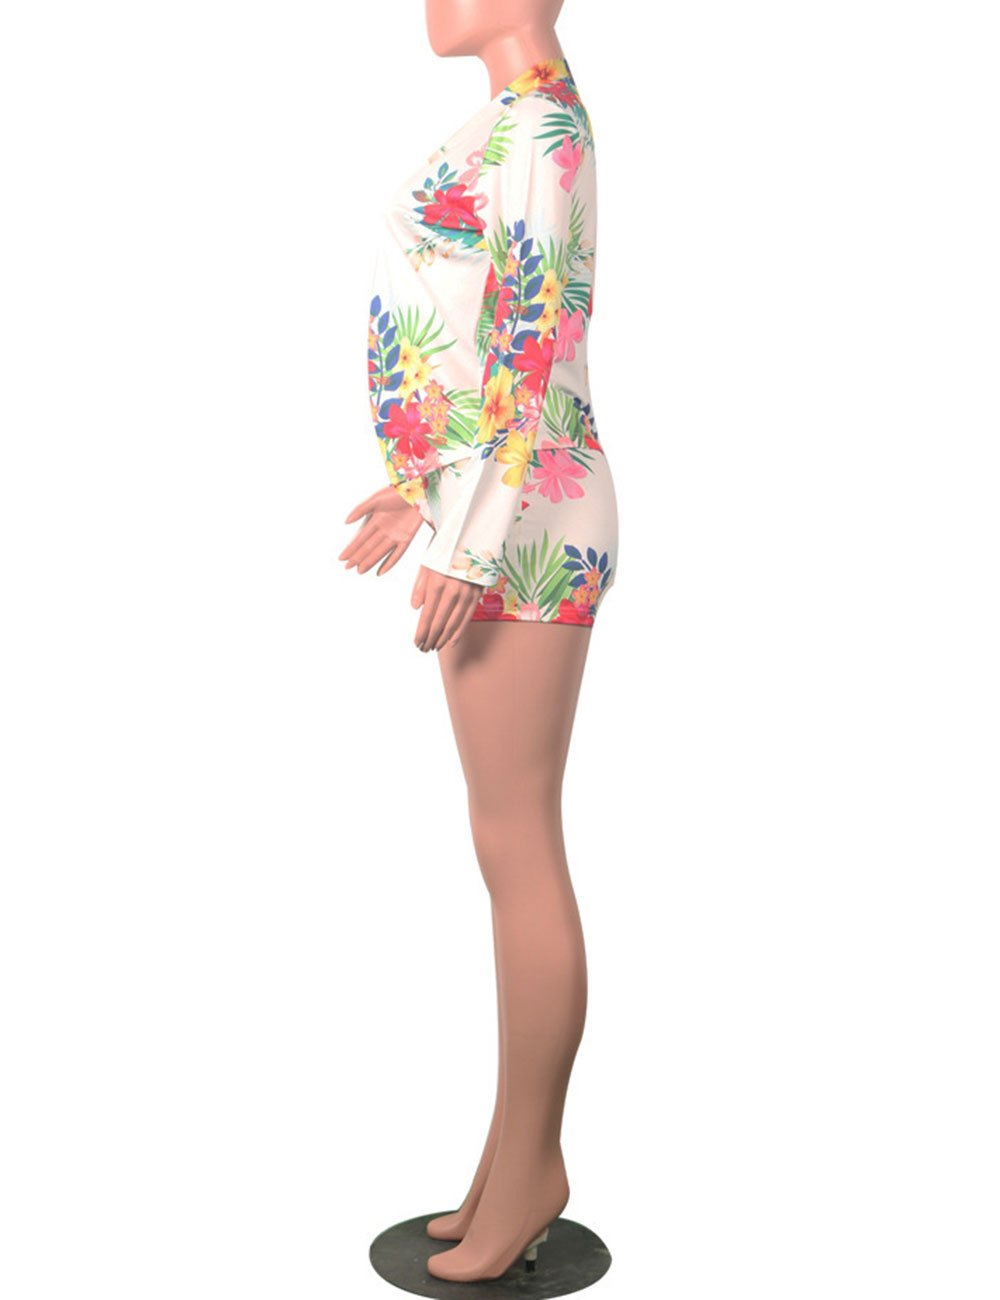 Women Floral Print Casual Two Pieces Suit Set Long Sleeve Blazer Shorts Outfit M by Angsuttc (Image #4)